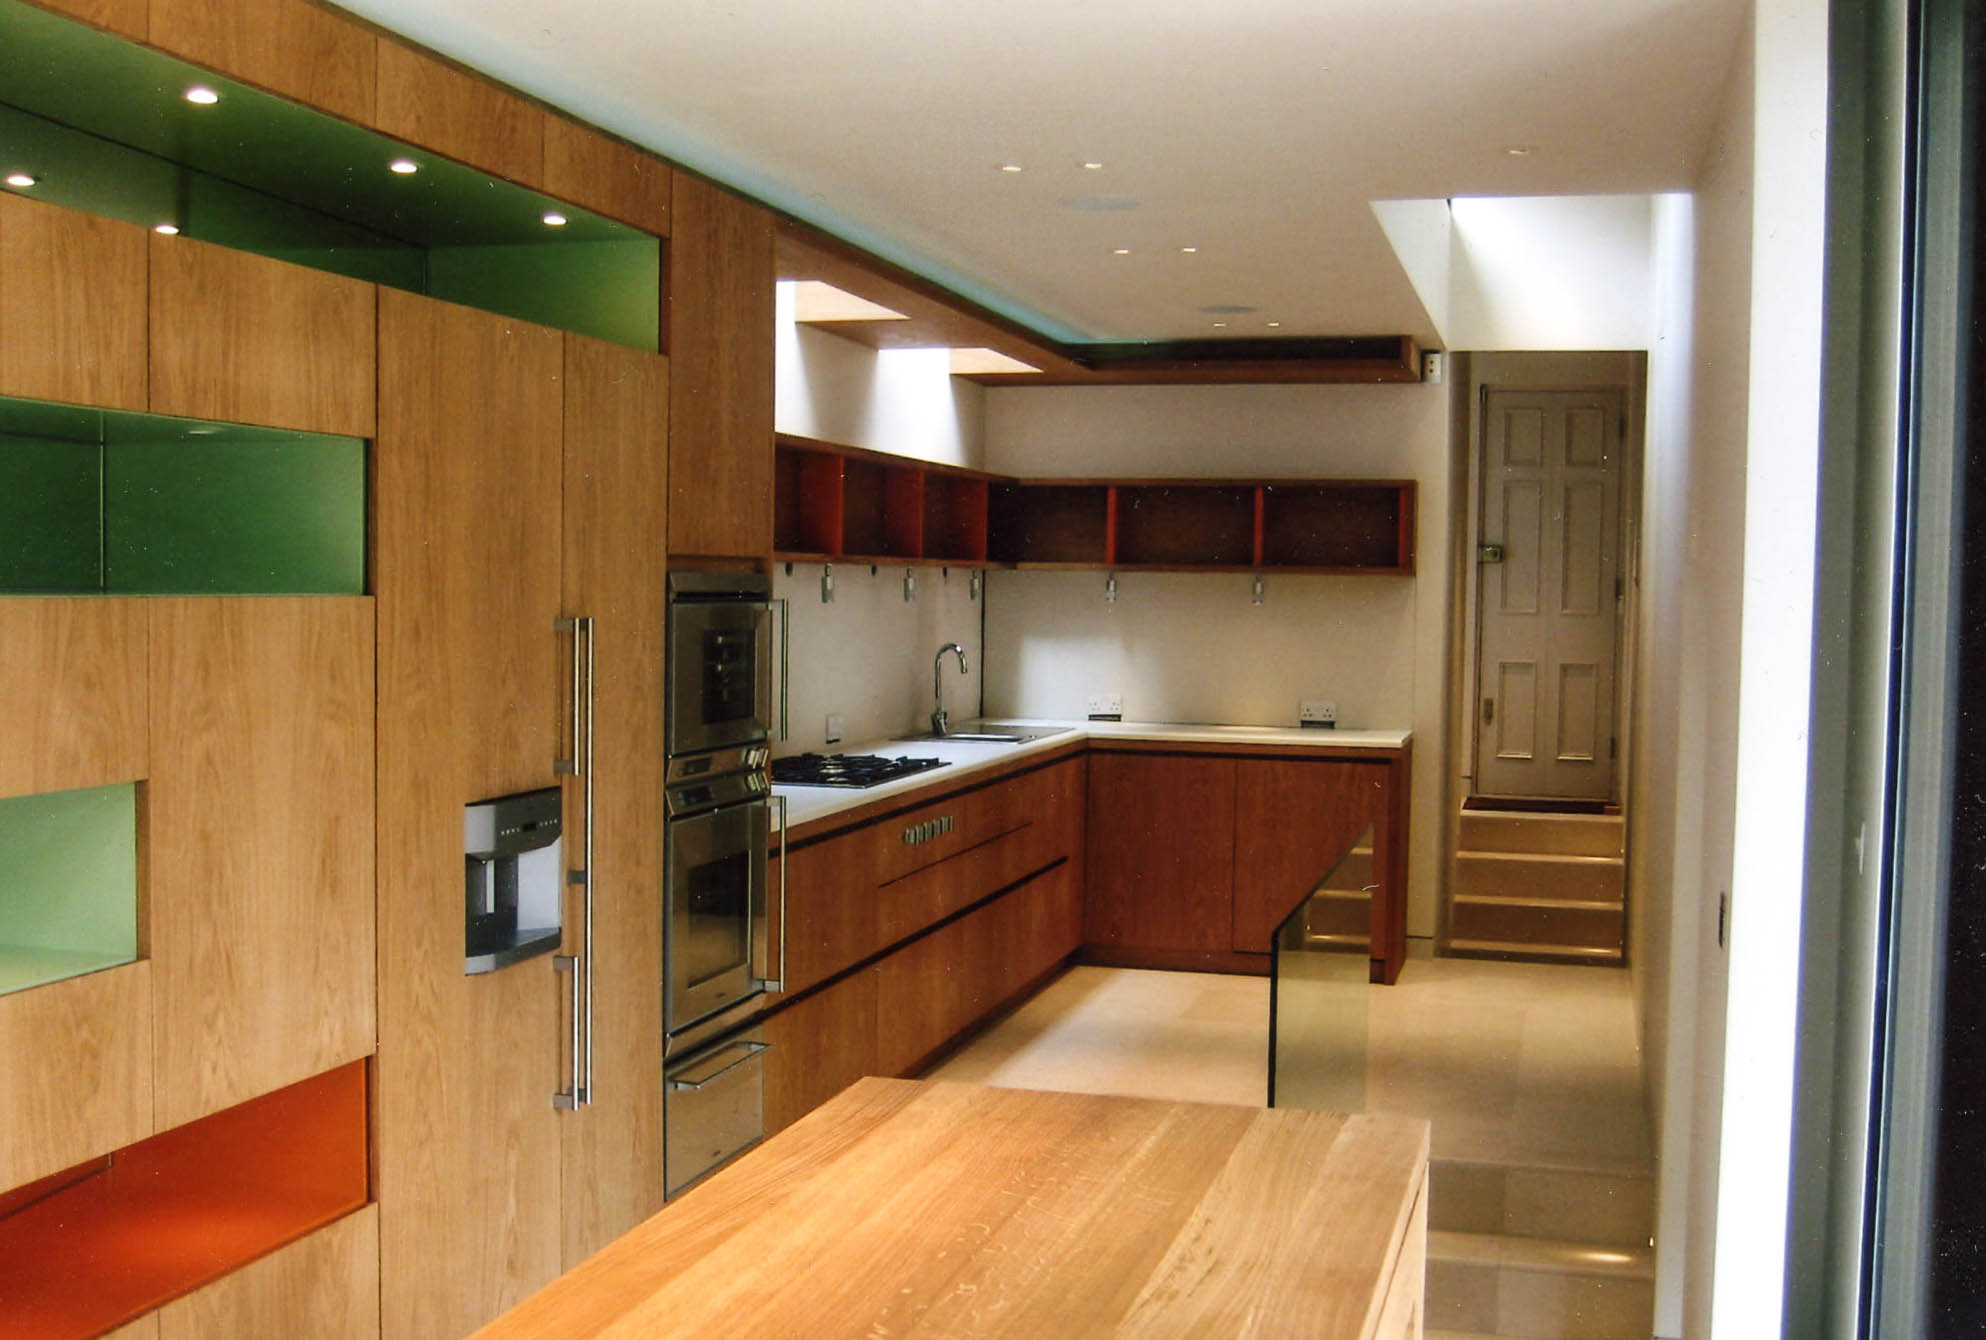 Kandd indoor kitchen cabinetry